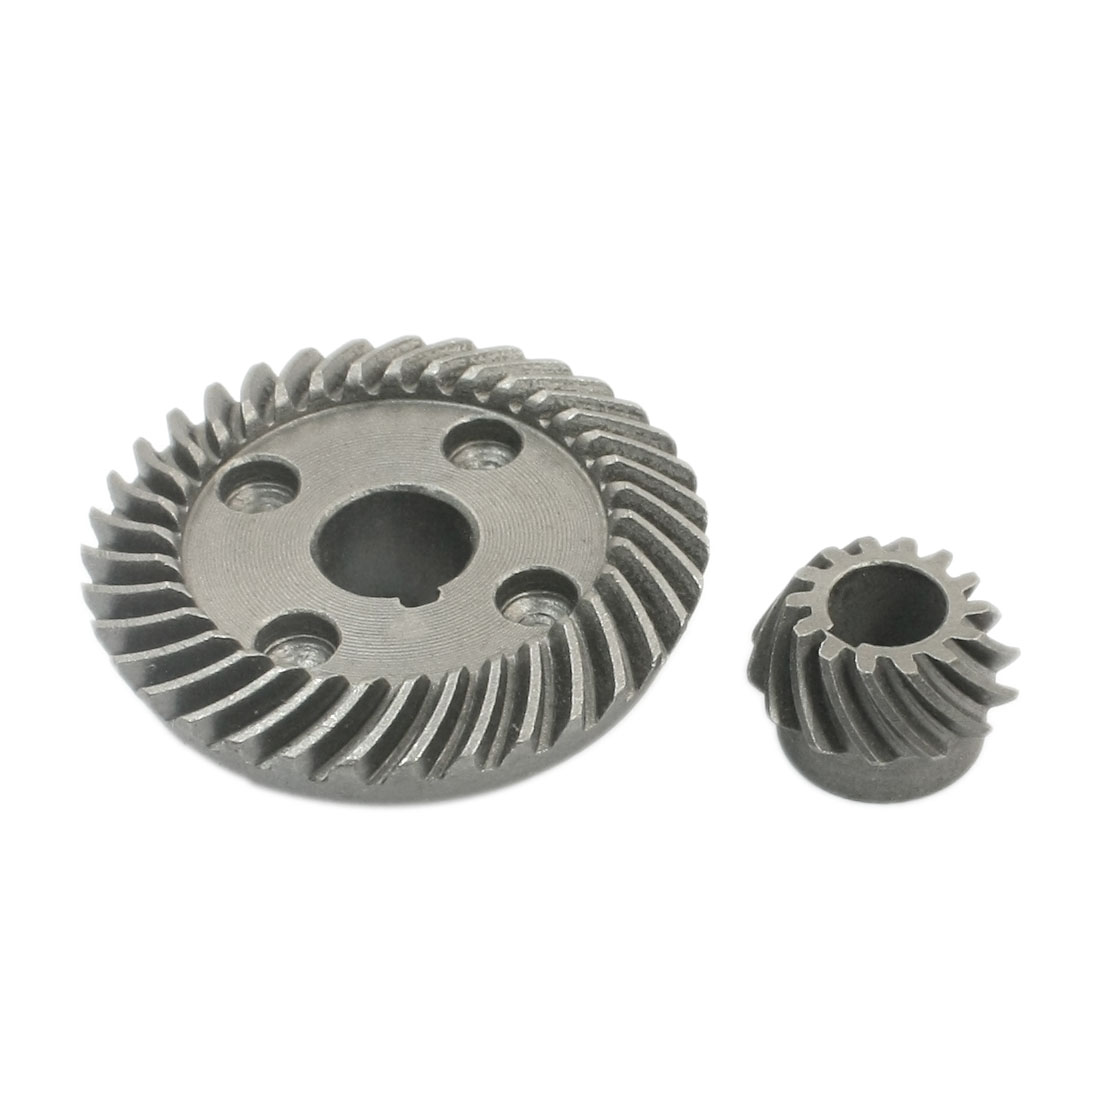 Power Tool Repairing Spiral Bevel Gear Set for Dragon 05-100 Angle Grinder